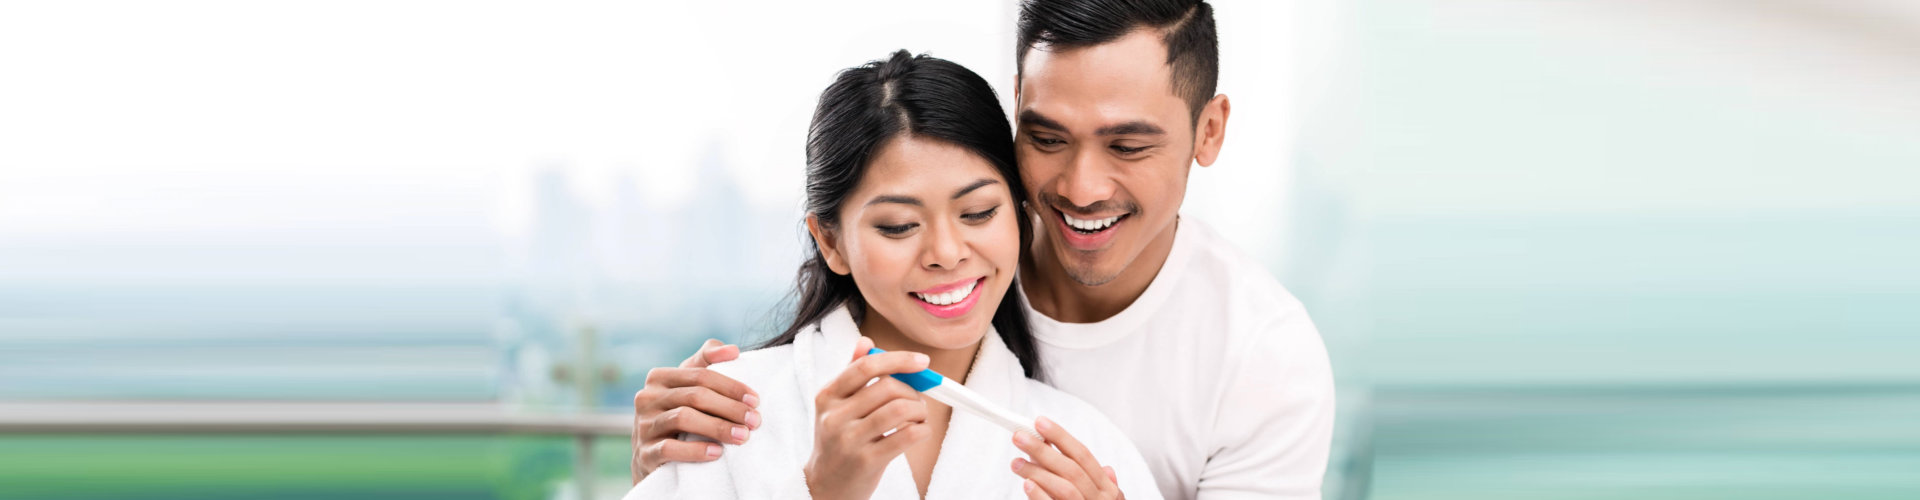 happy couple looking at a positive pregnancy test result